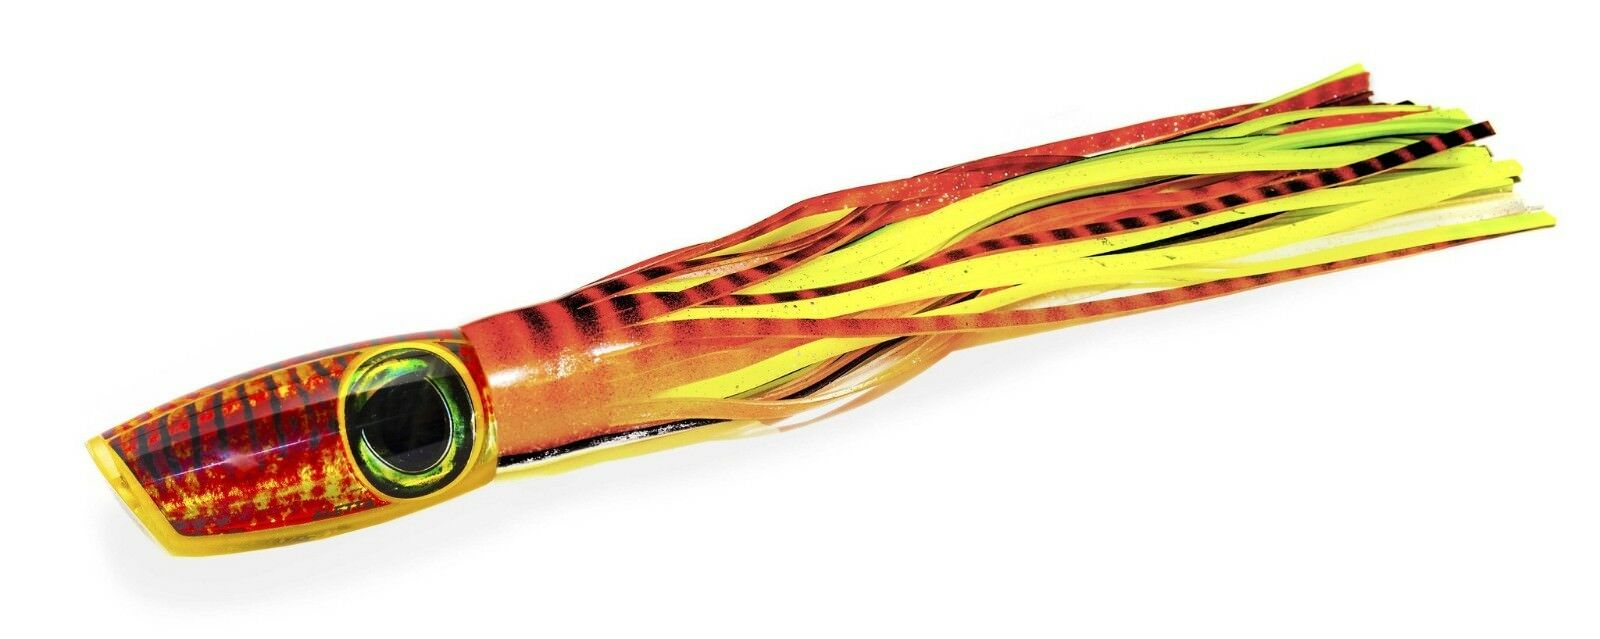 15  Goric. Marlin Trolling Lure  38  cm 256 gr handcrafted  70% off